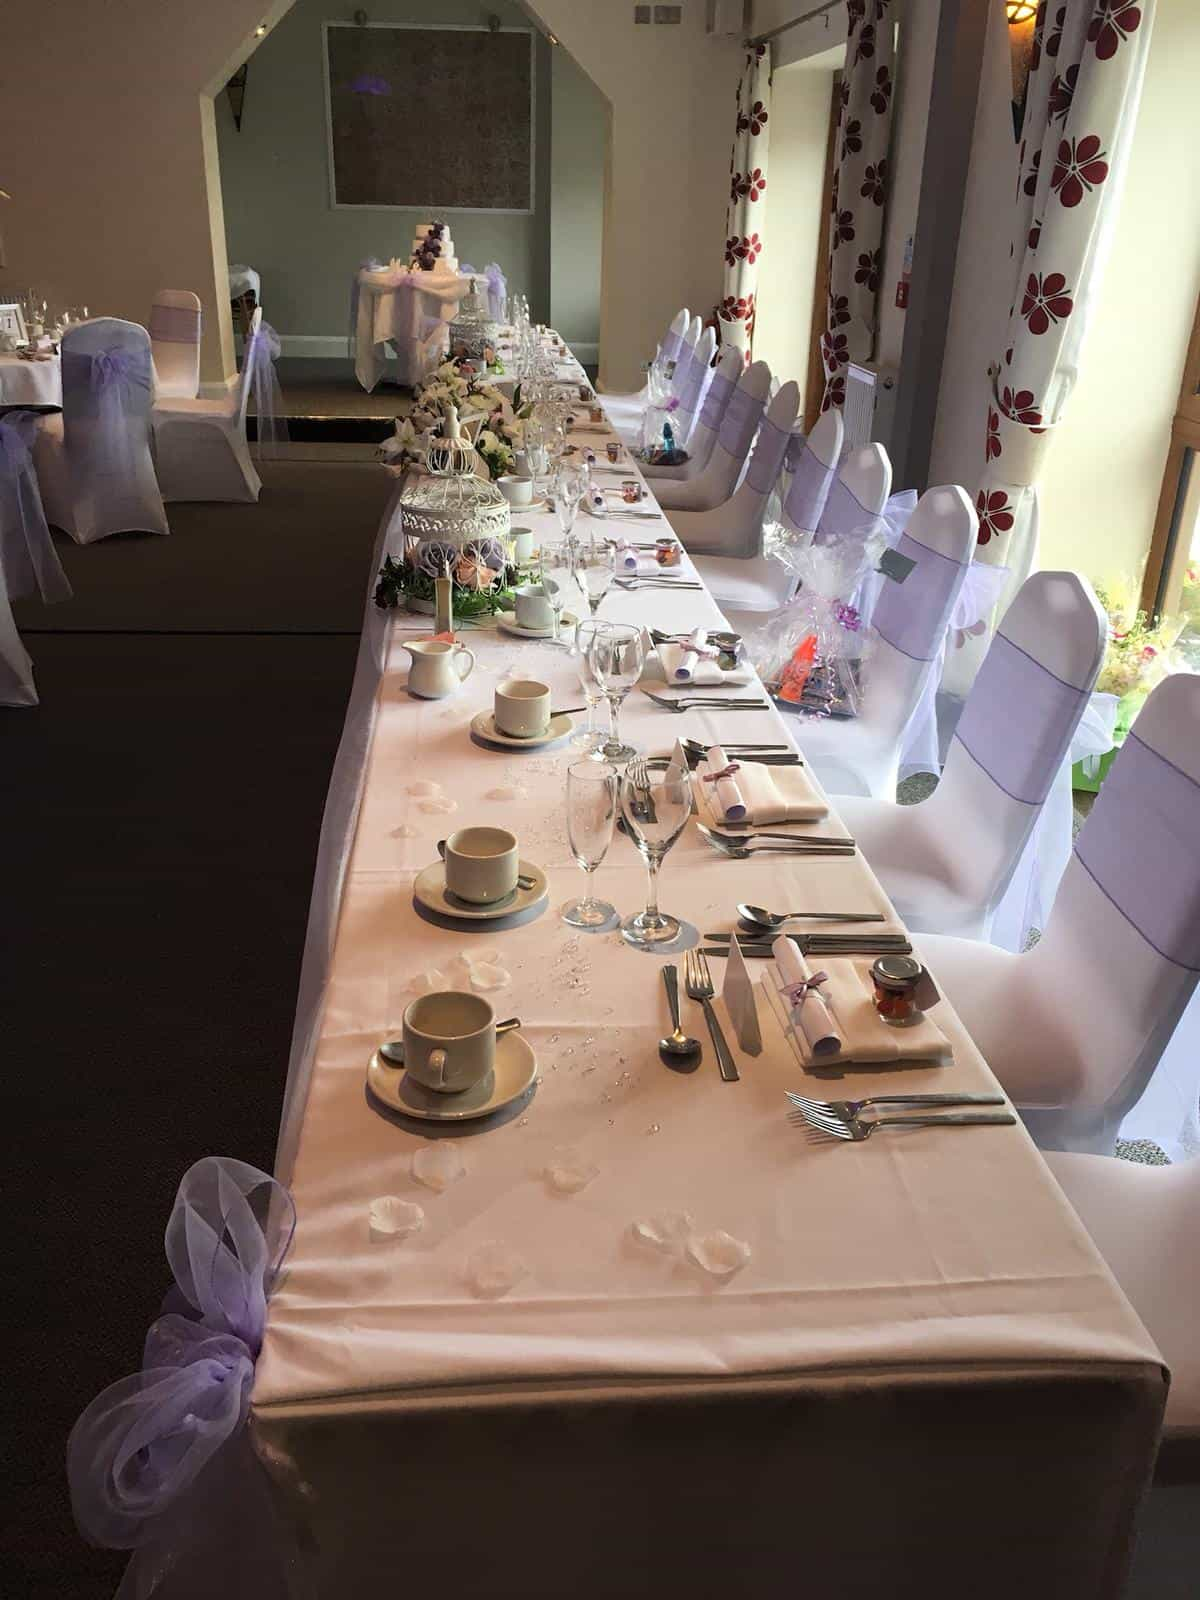 Wedding breakfast venue top table dressed with white table linen and chairs with silver sashes on chairs